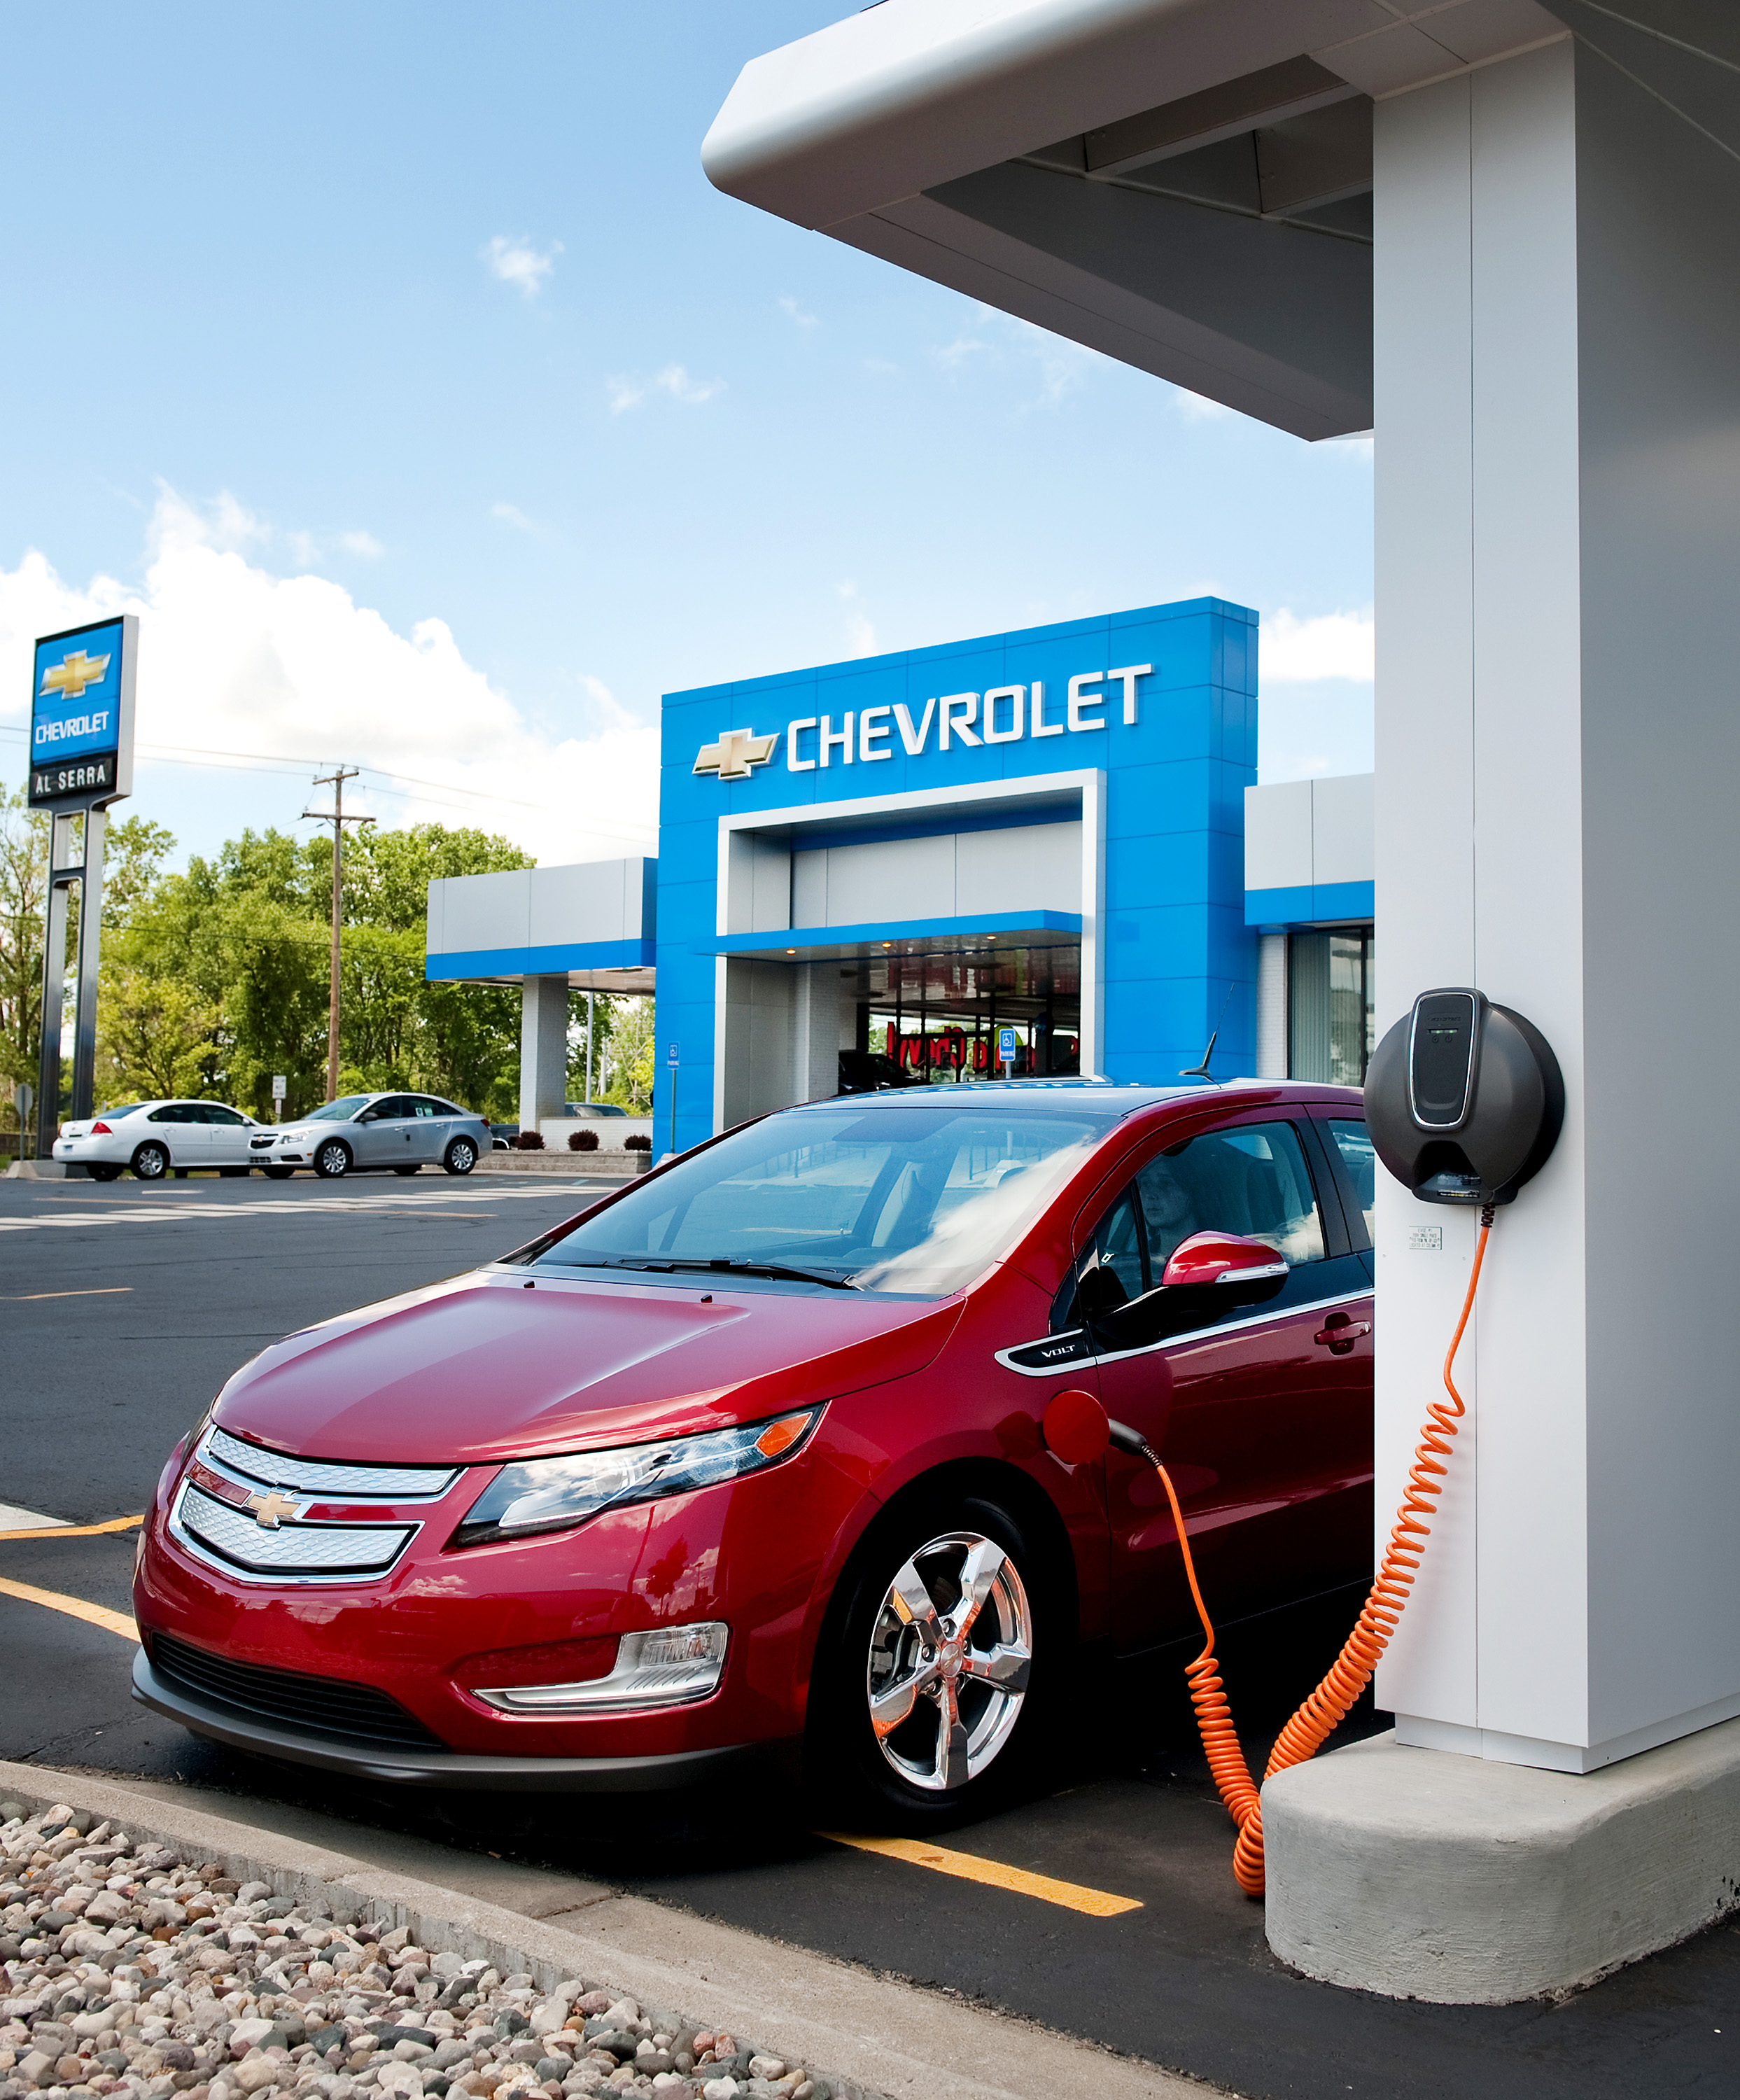 with the Chevy Volt